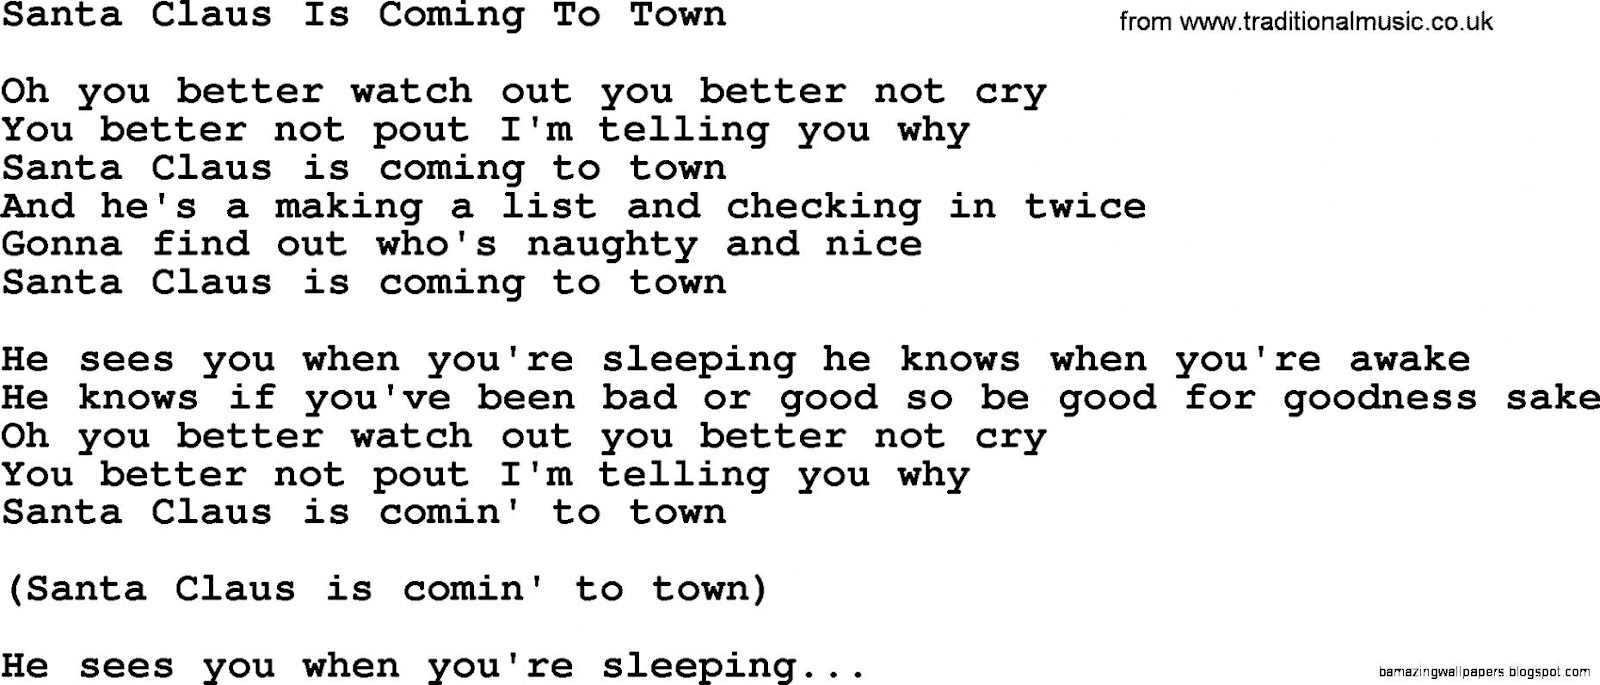 Dolly Parton song Santa Claus Is Coming To Town lyrics